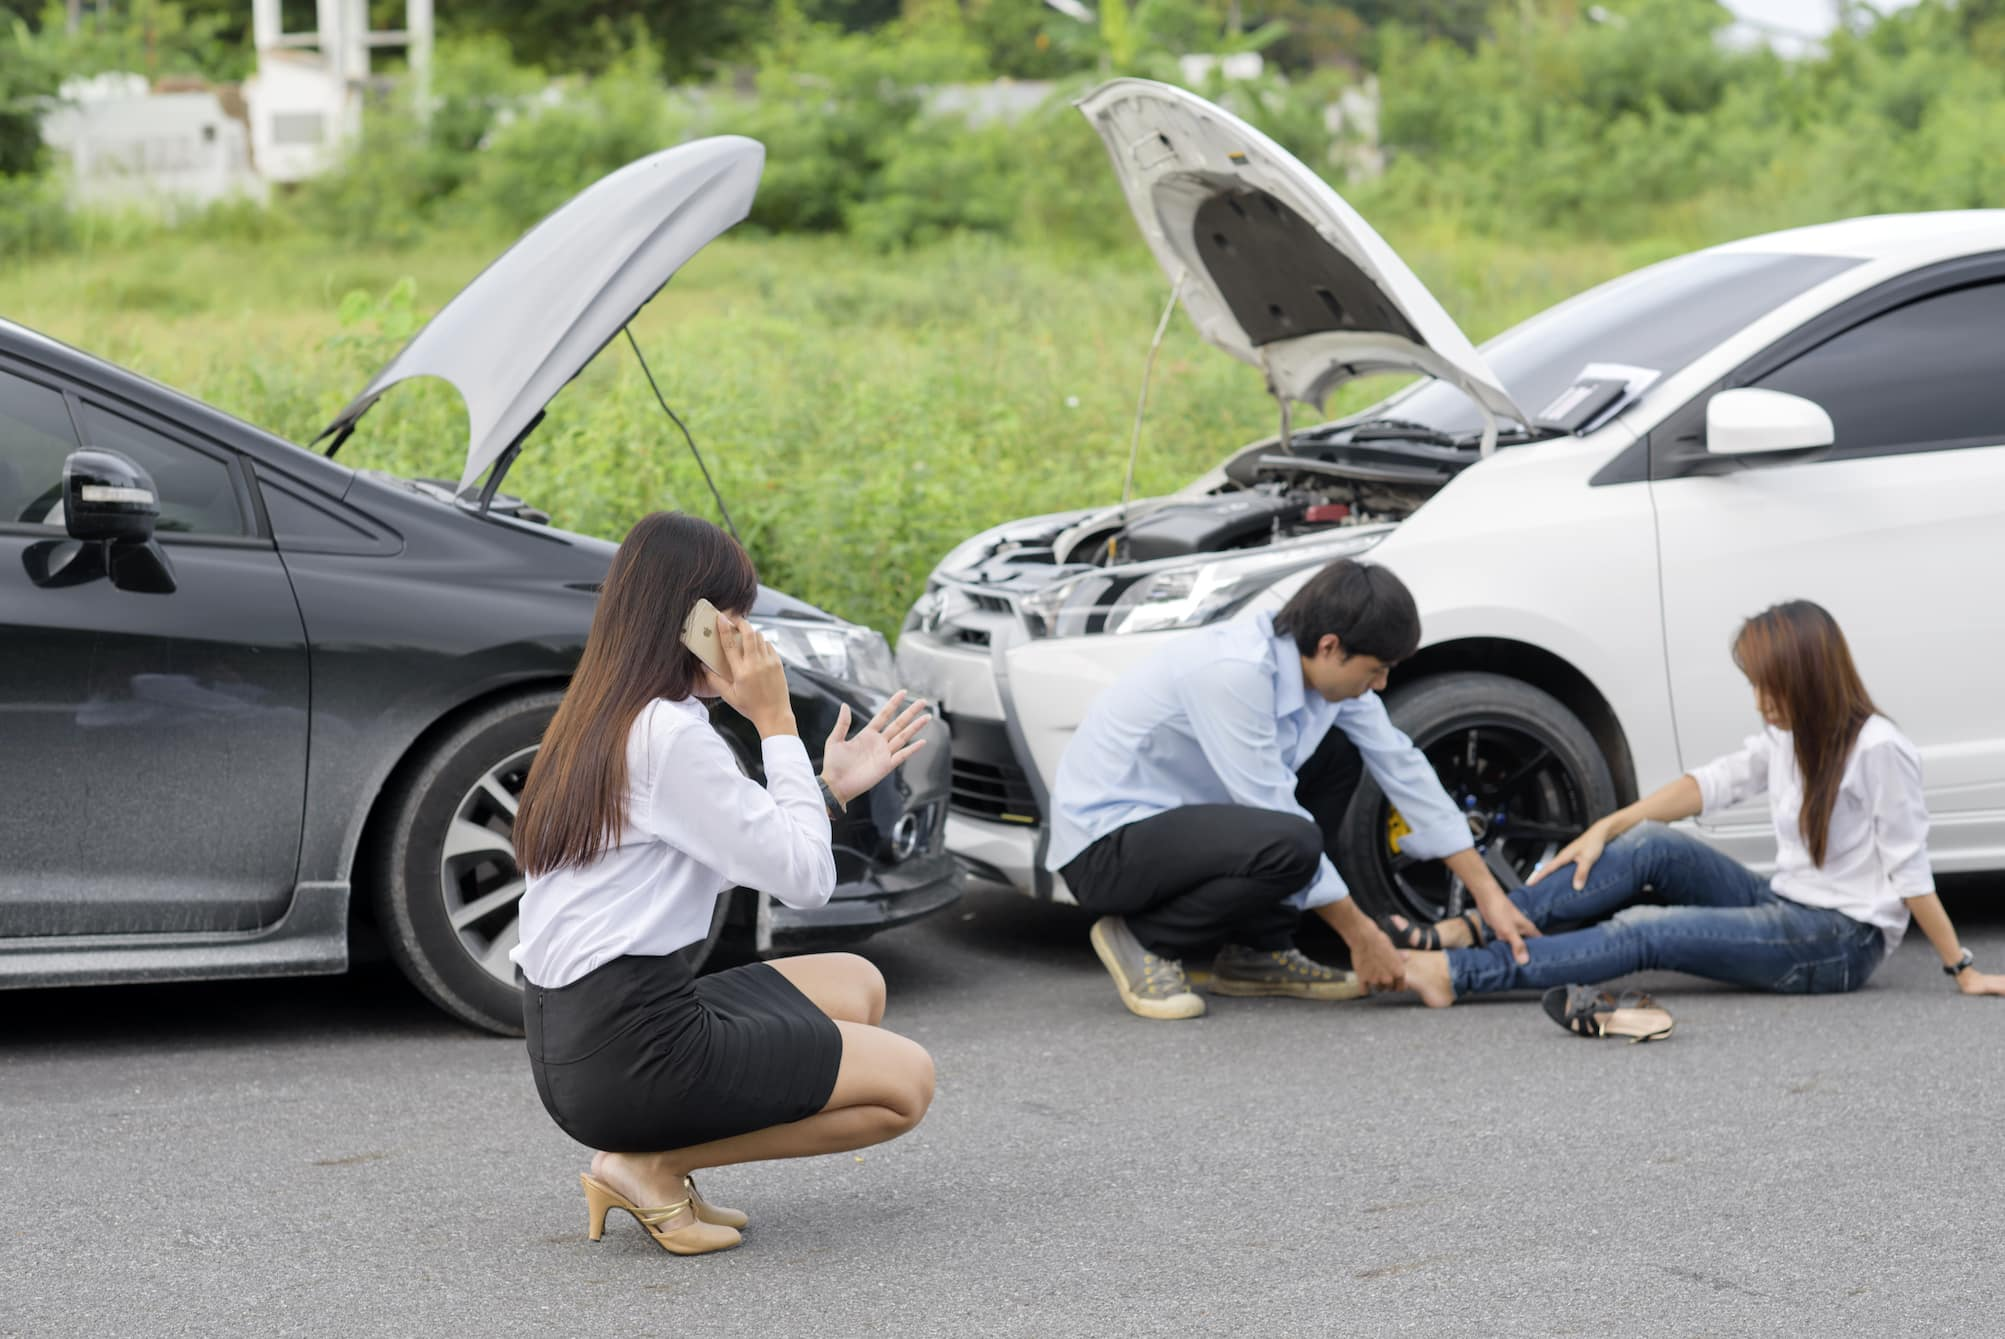 Injured In Accident How Long Do You Have To Report A Car Accident Parrish Law Firm